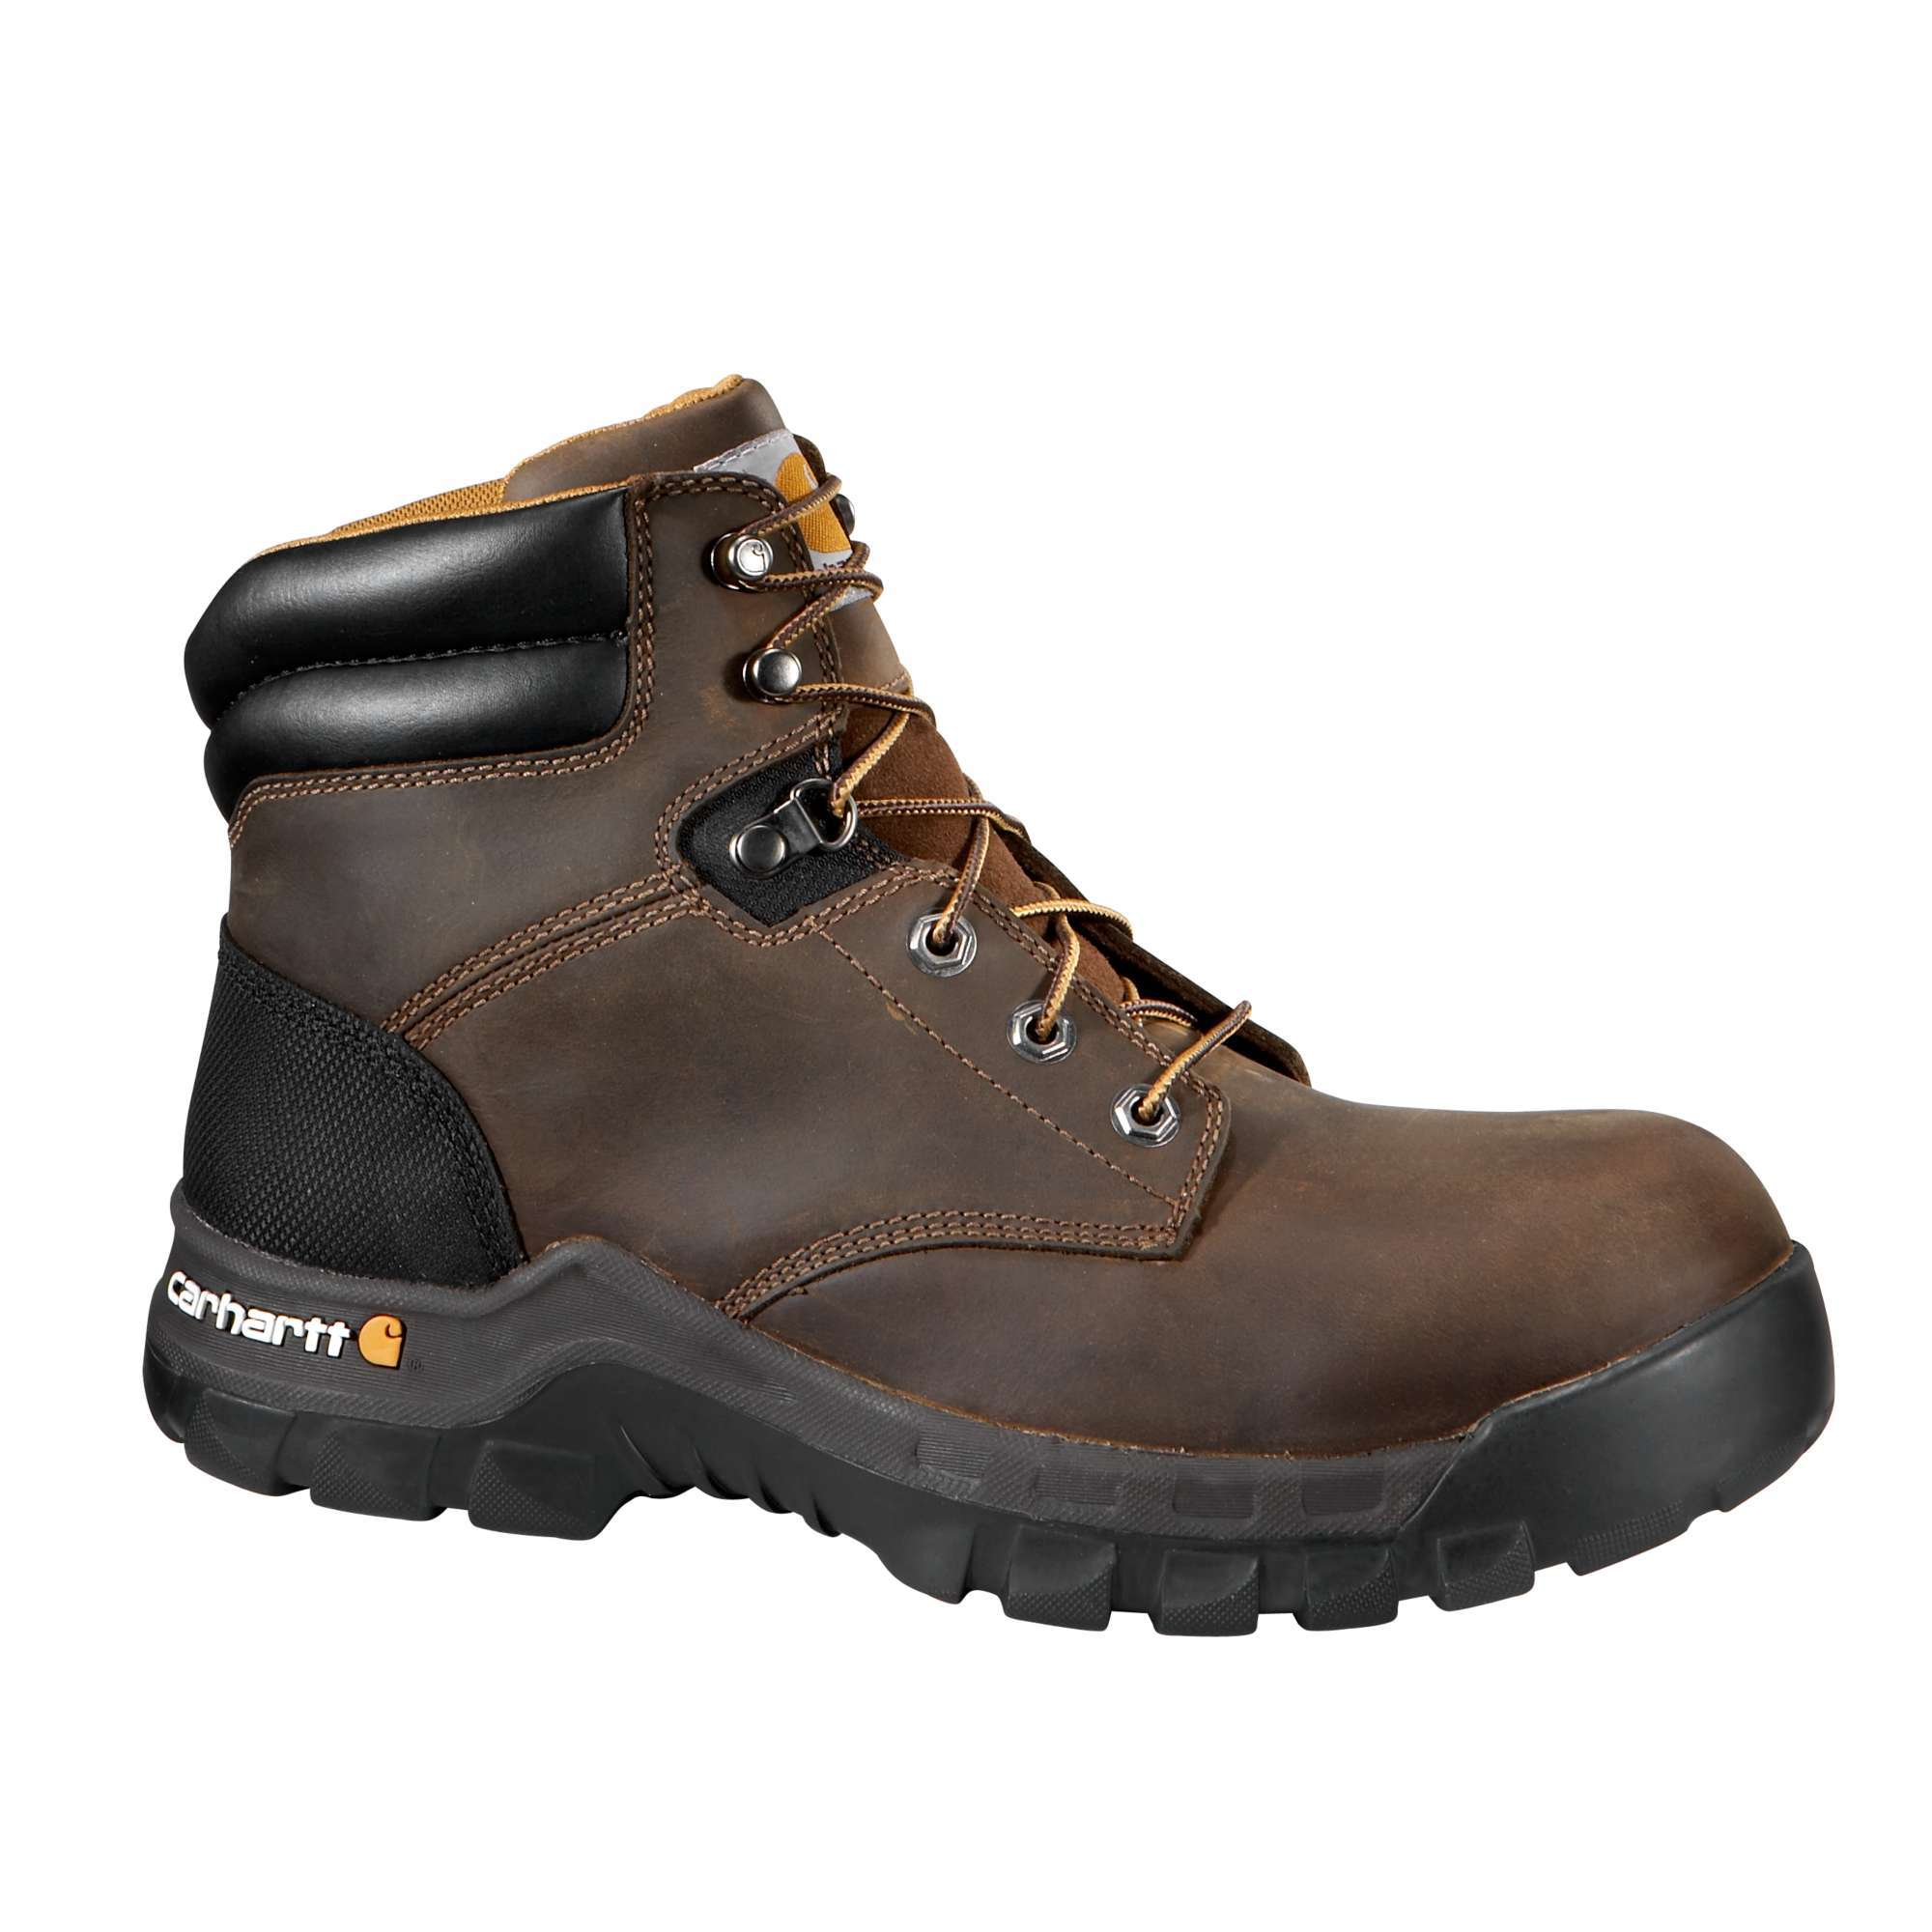 MEN'S RUGGED FLEX® 6-INCH COMPOSITE TOE WORK BOOT